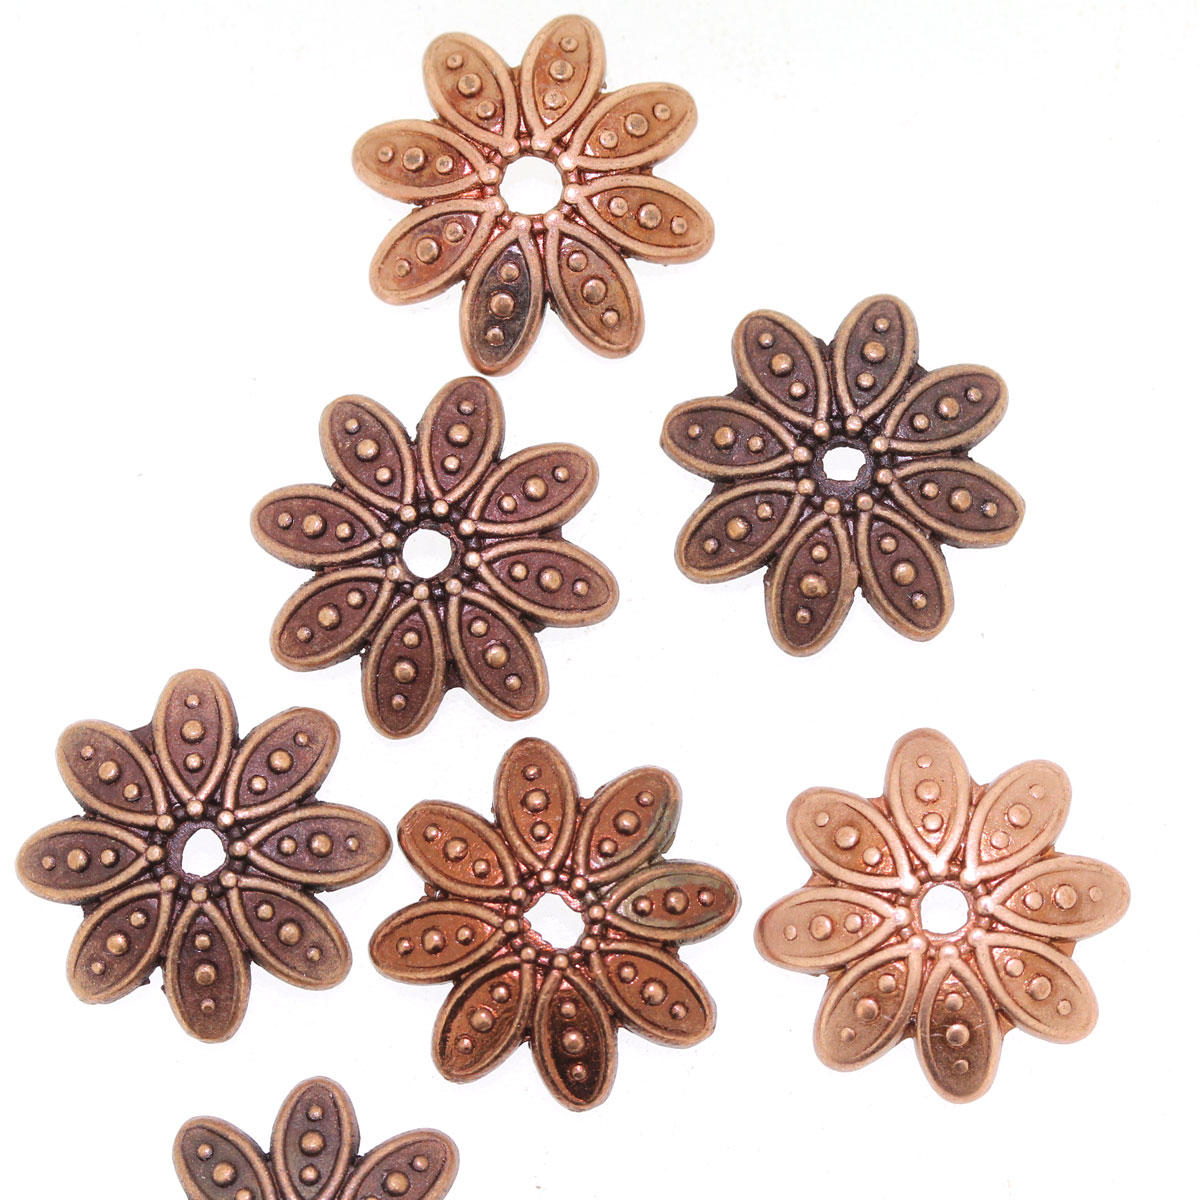 Antique Copper Flower Bead Cap Component